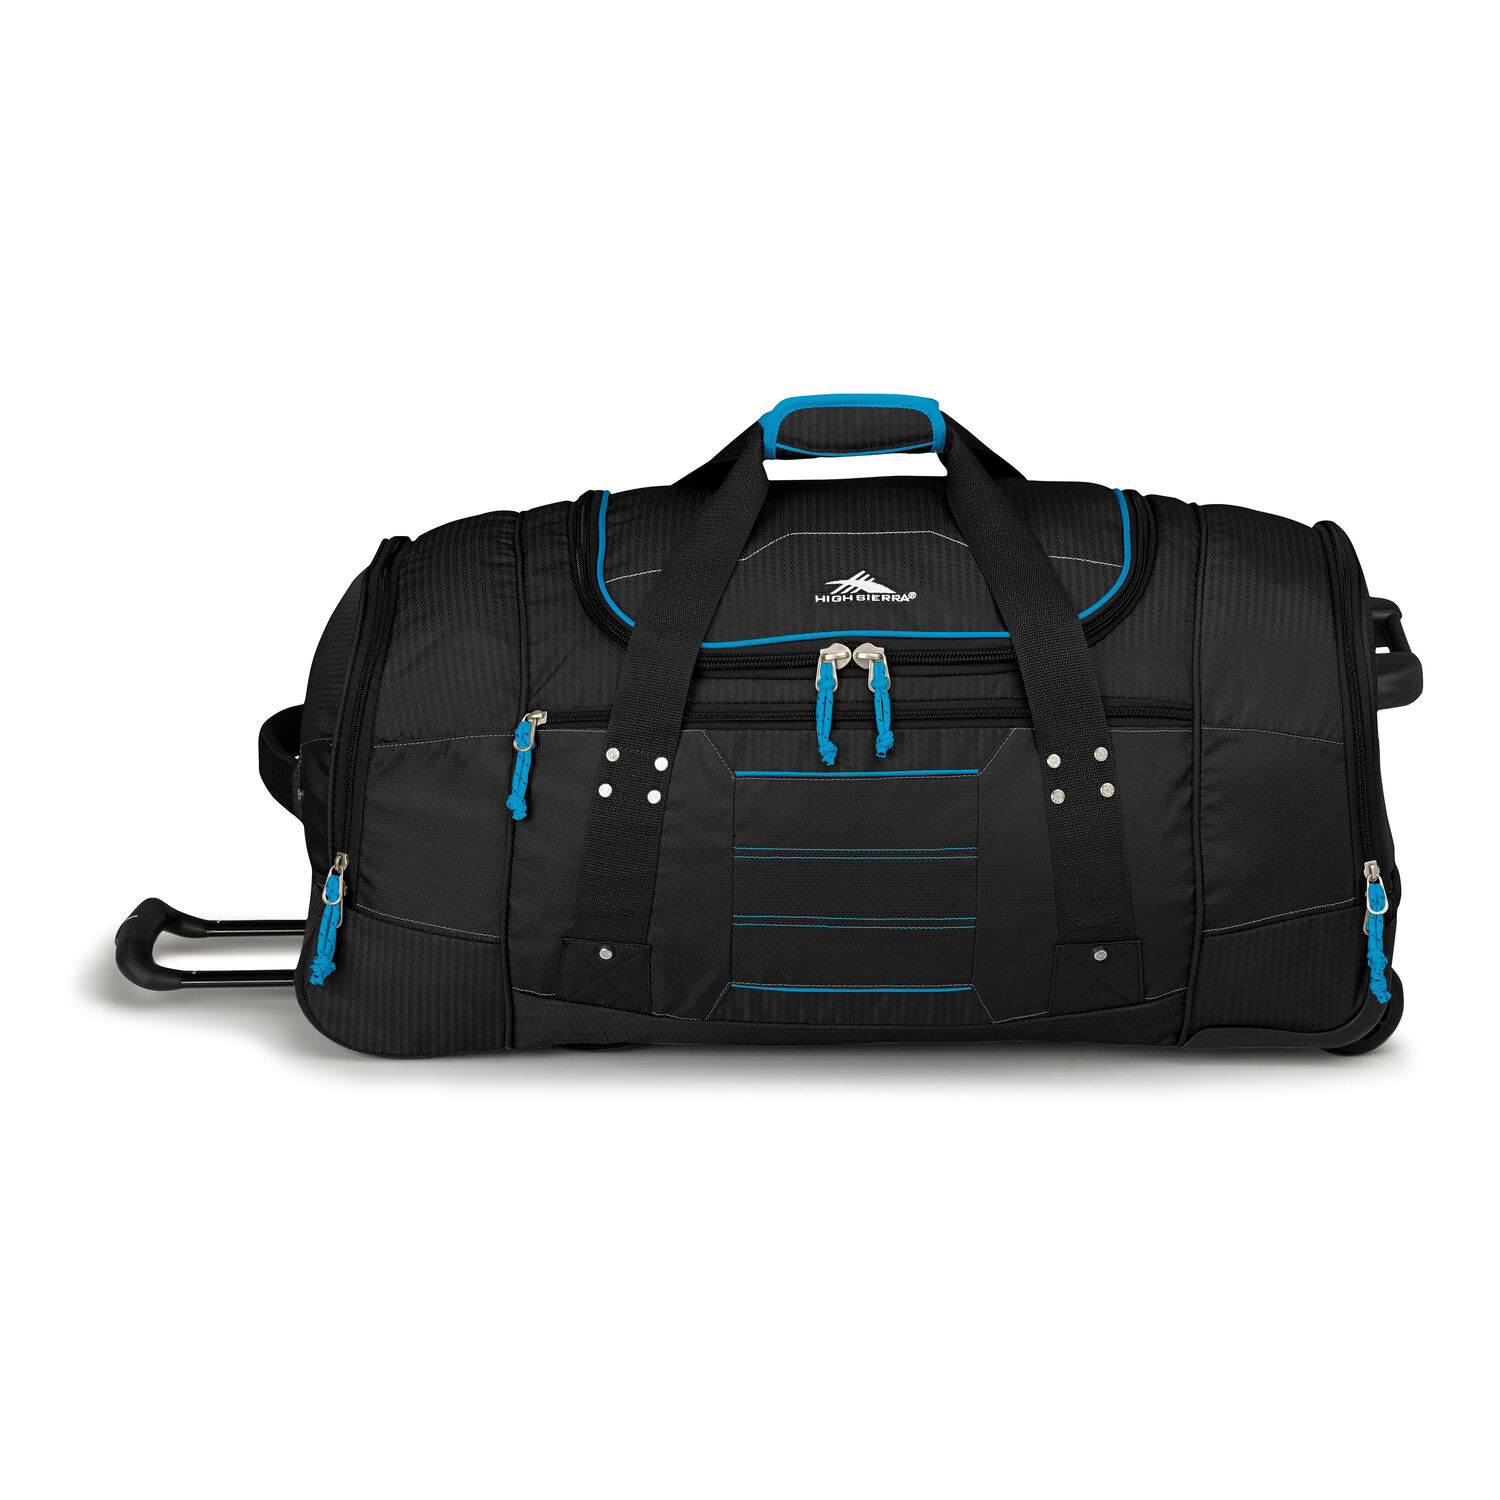 66947a469cb High Sierra Ultimate Access 2.0 30 quot  Wheeled Duffel in the color Black  Blueprint.